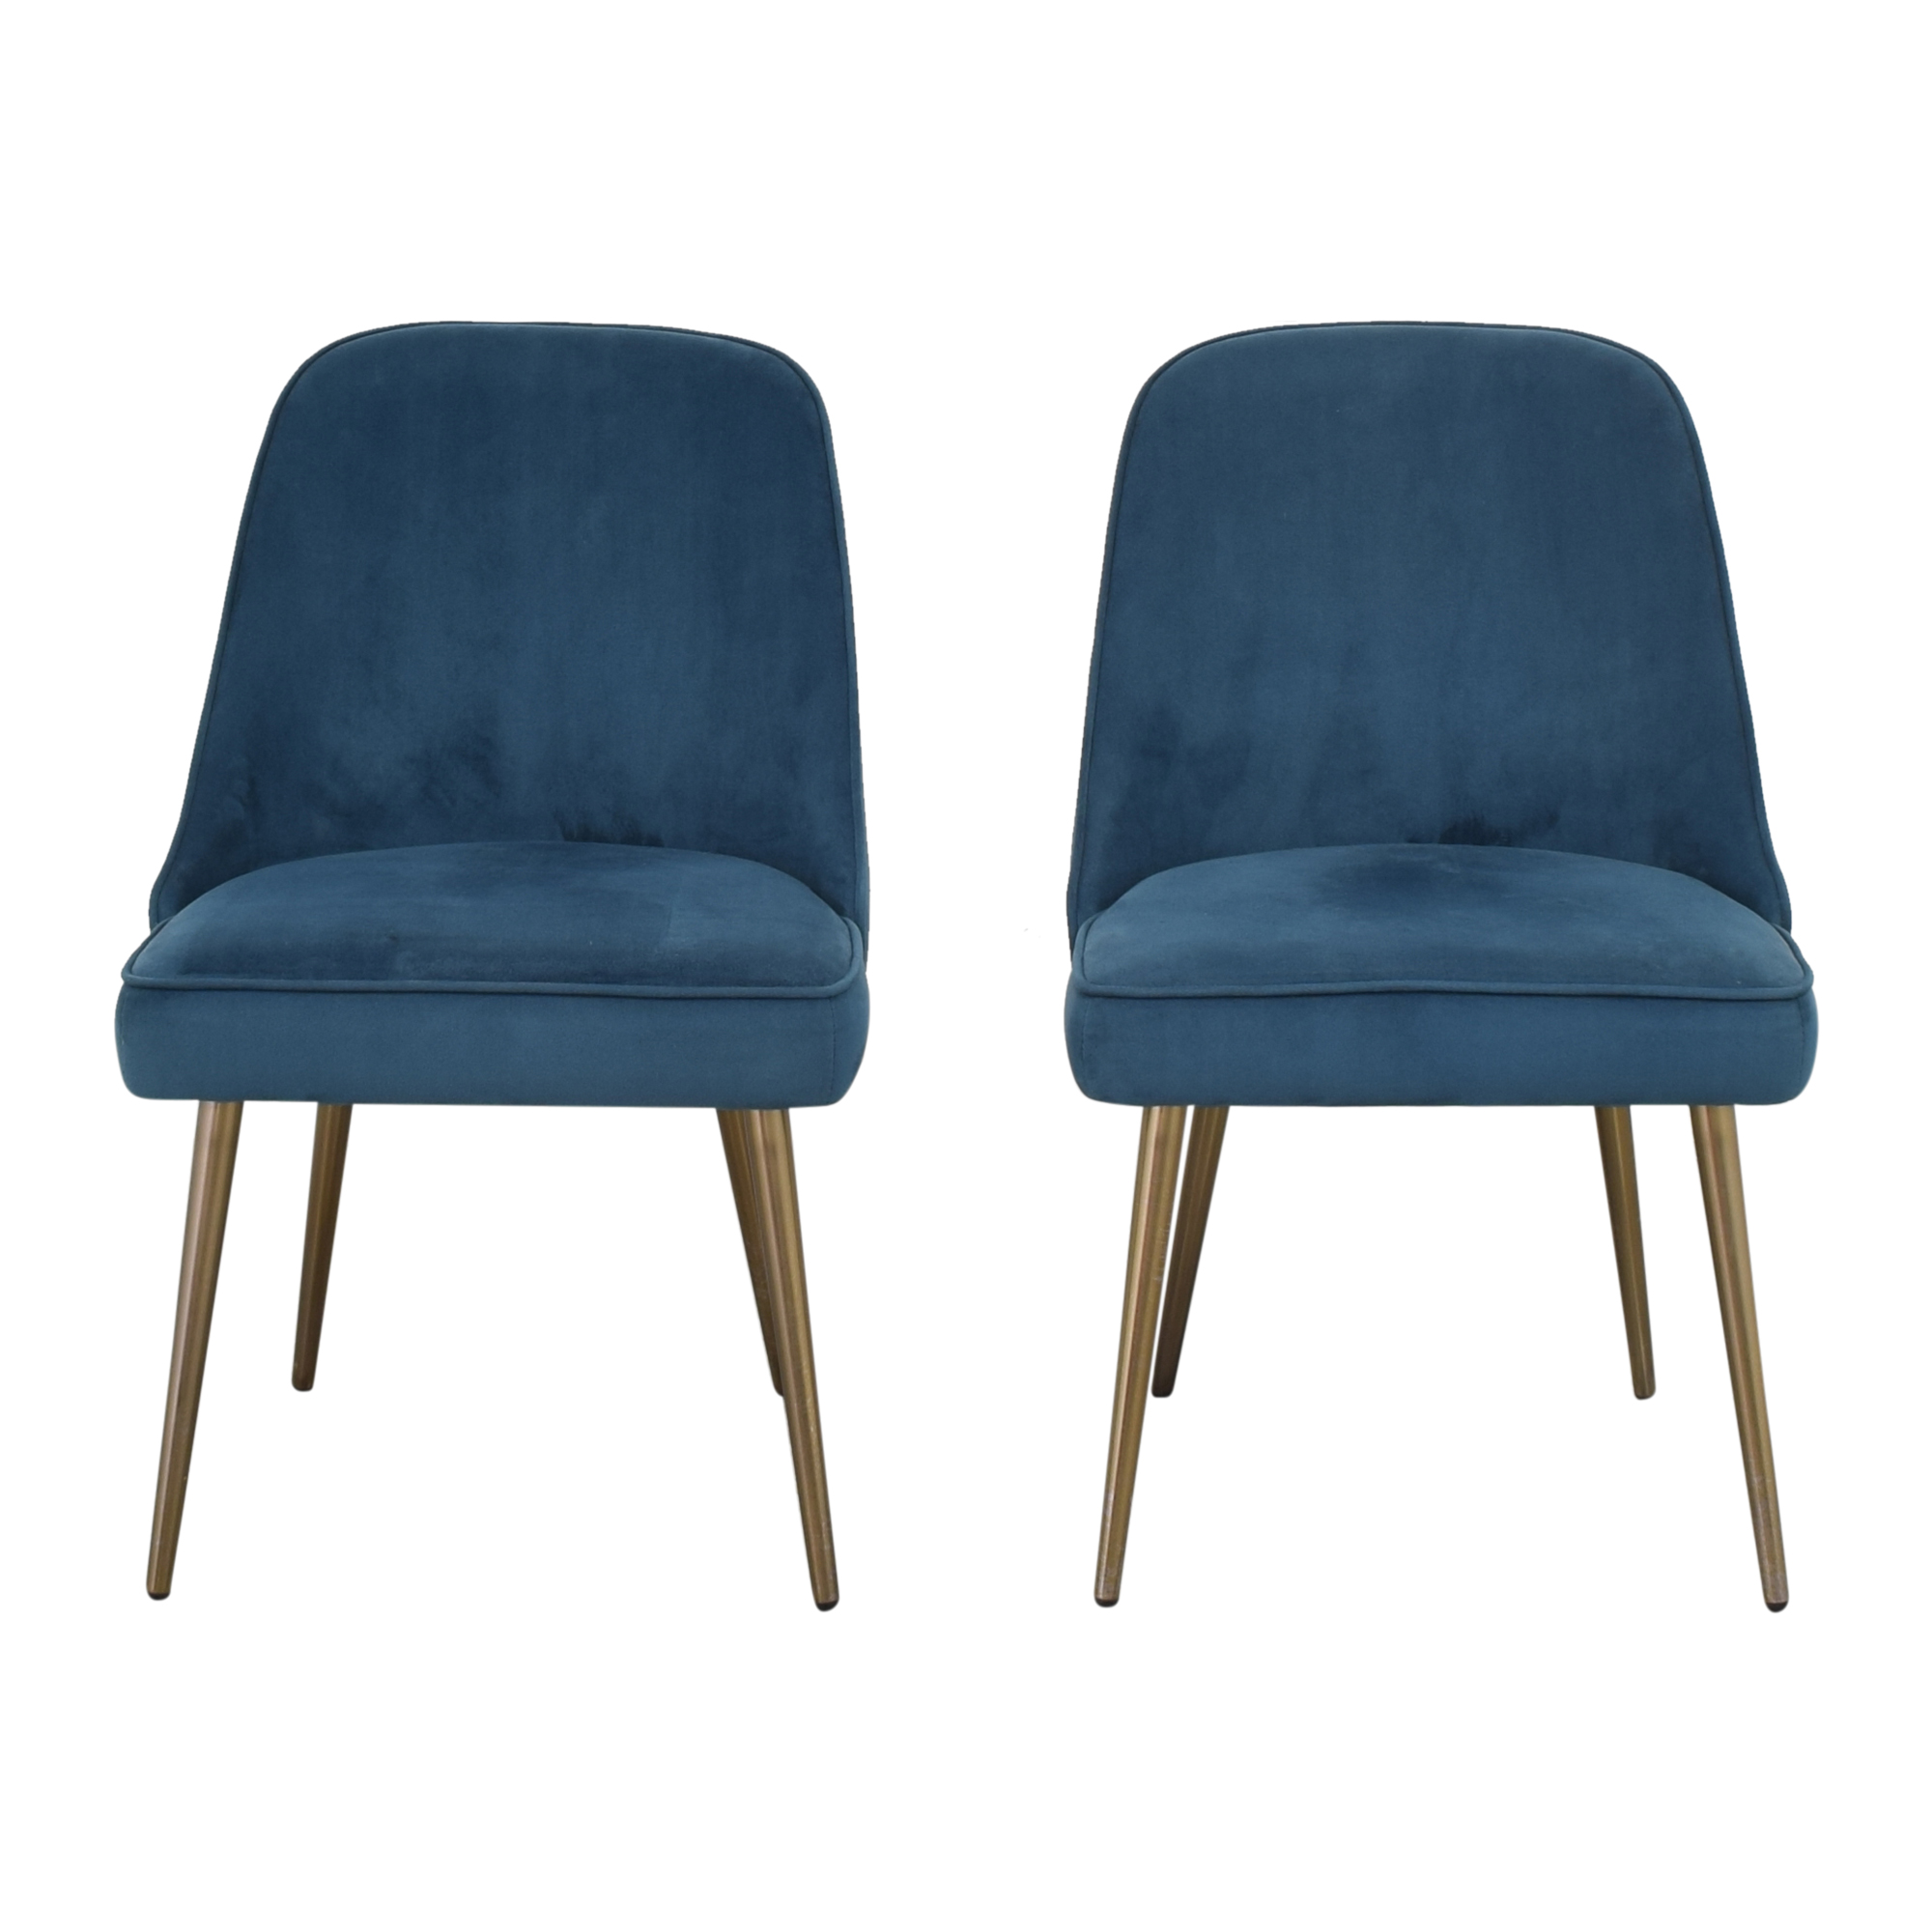 West Elm West Elm Mid Century Upholstered Dining Chairs used